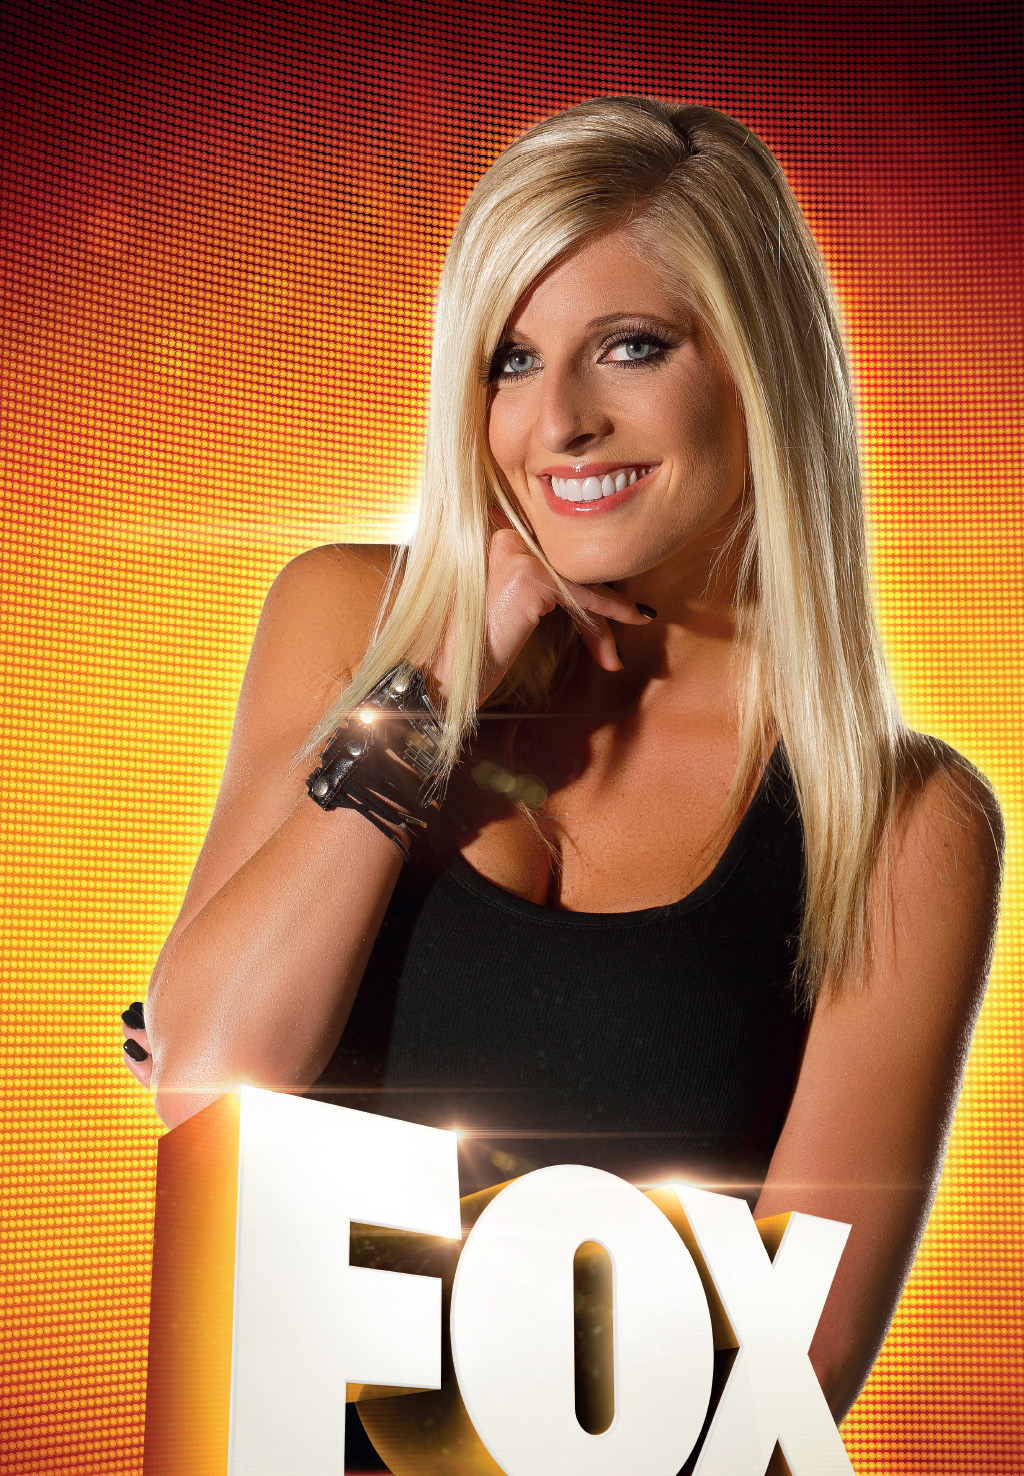 FOX TV - Noa Neal